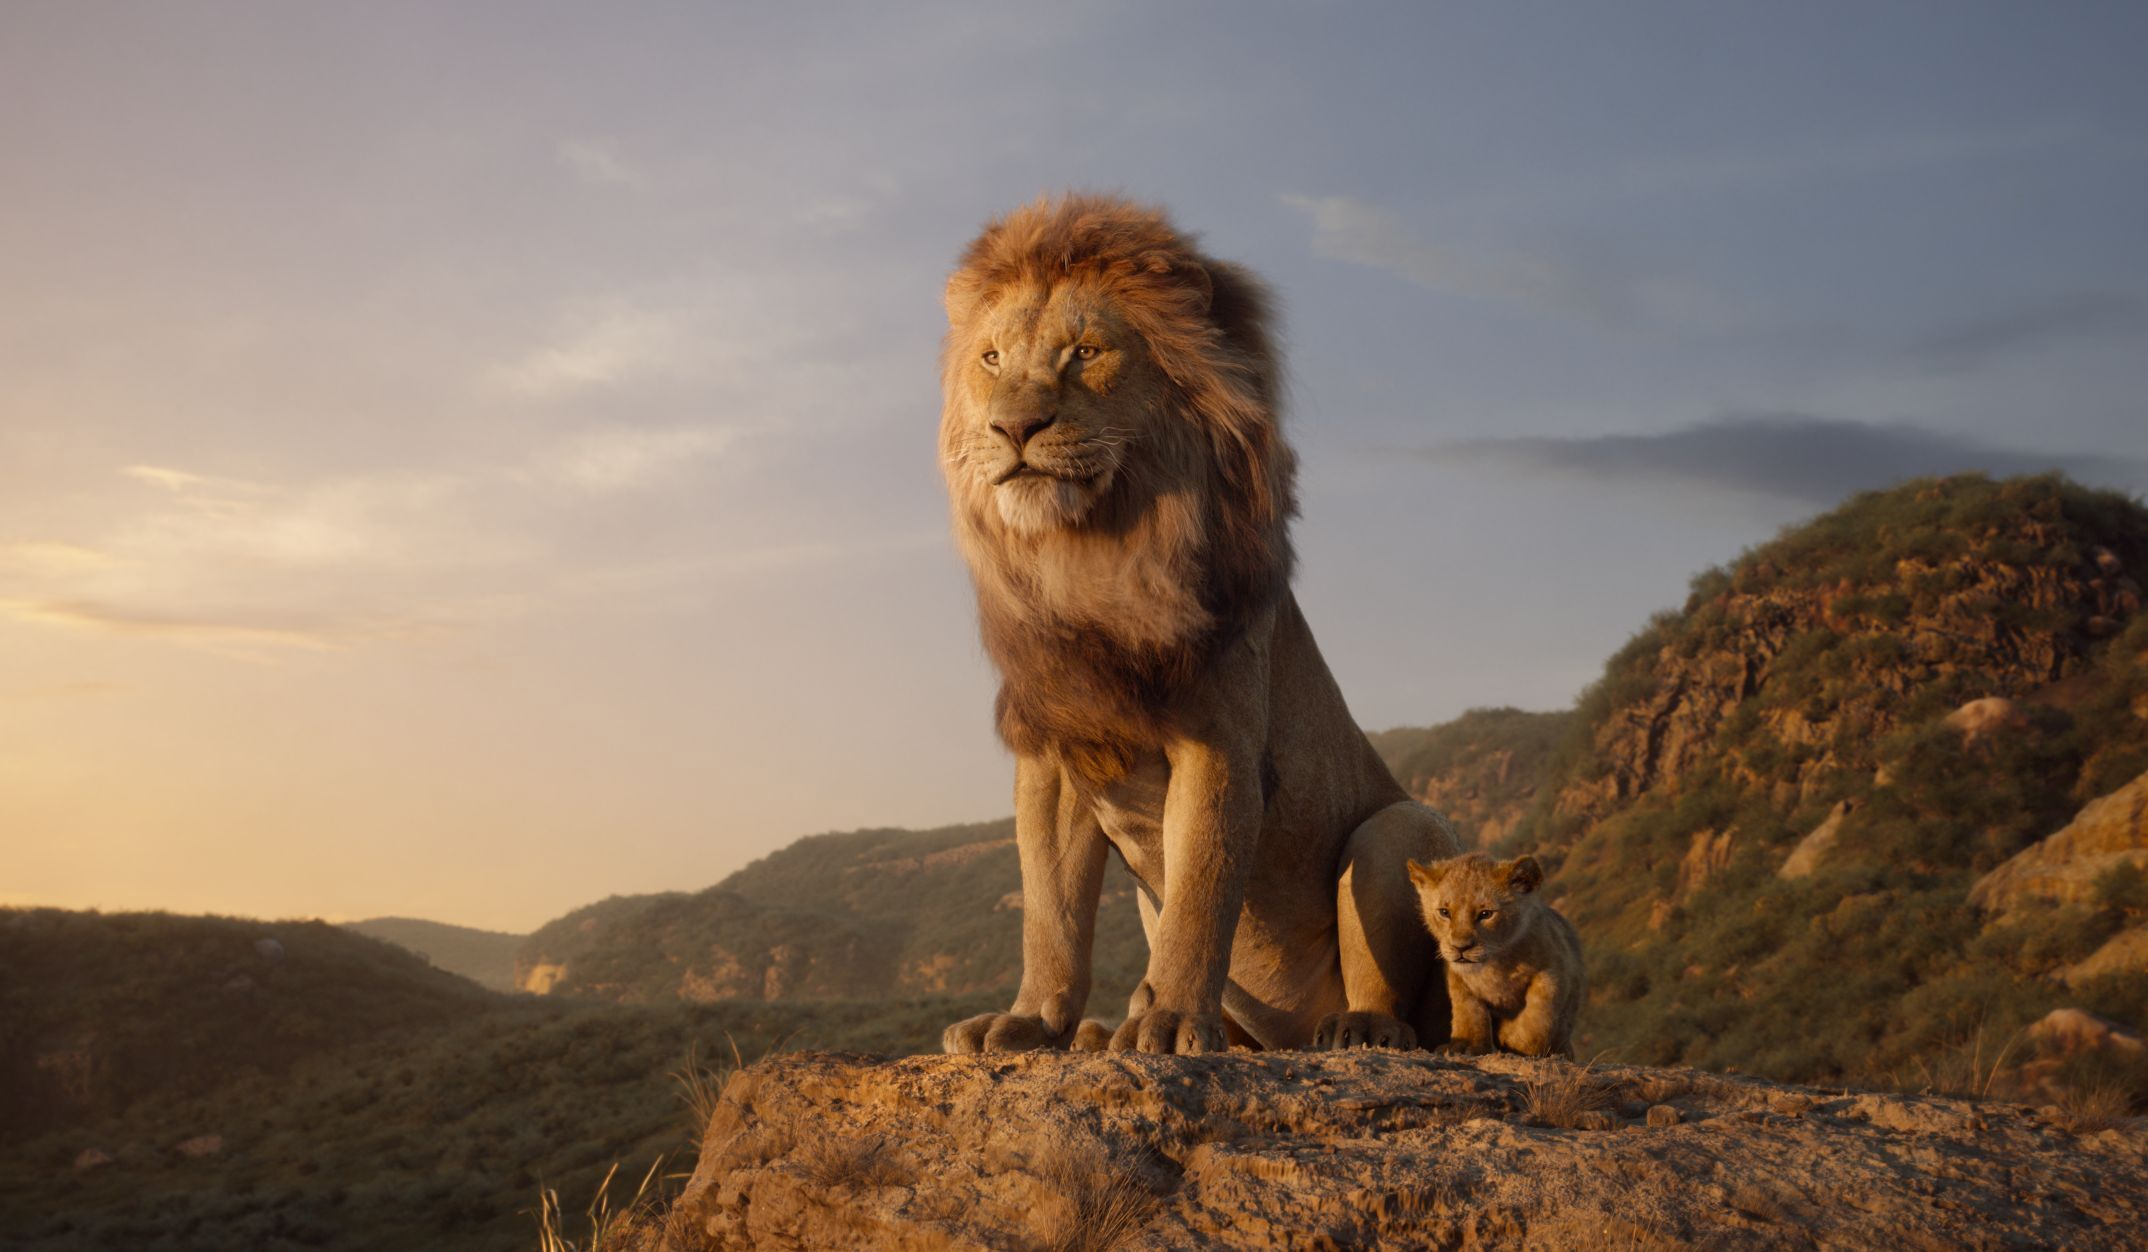 DISNEY TO REMAKE THE LION KING AS A CARTOON